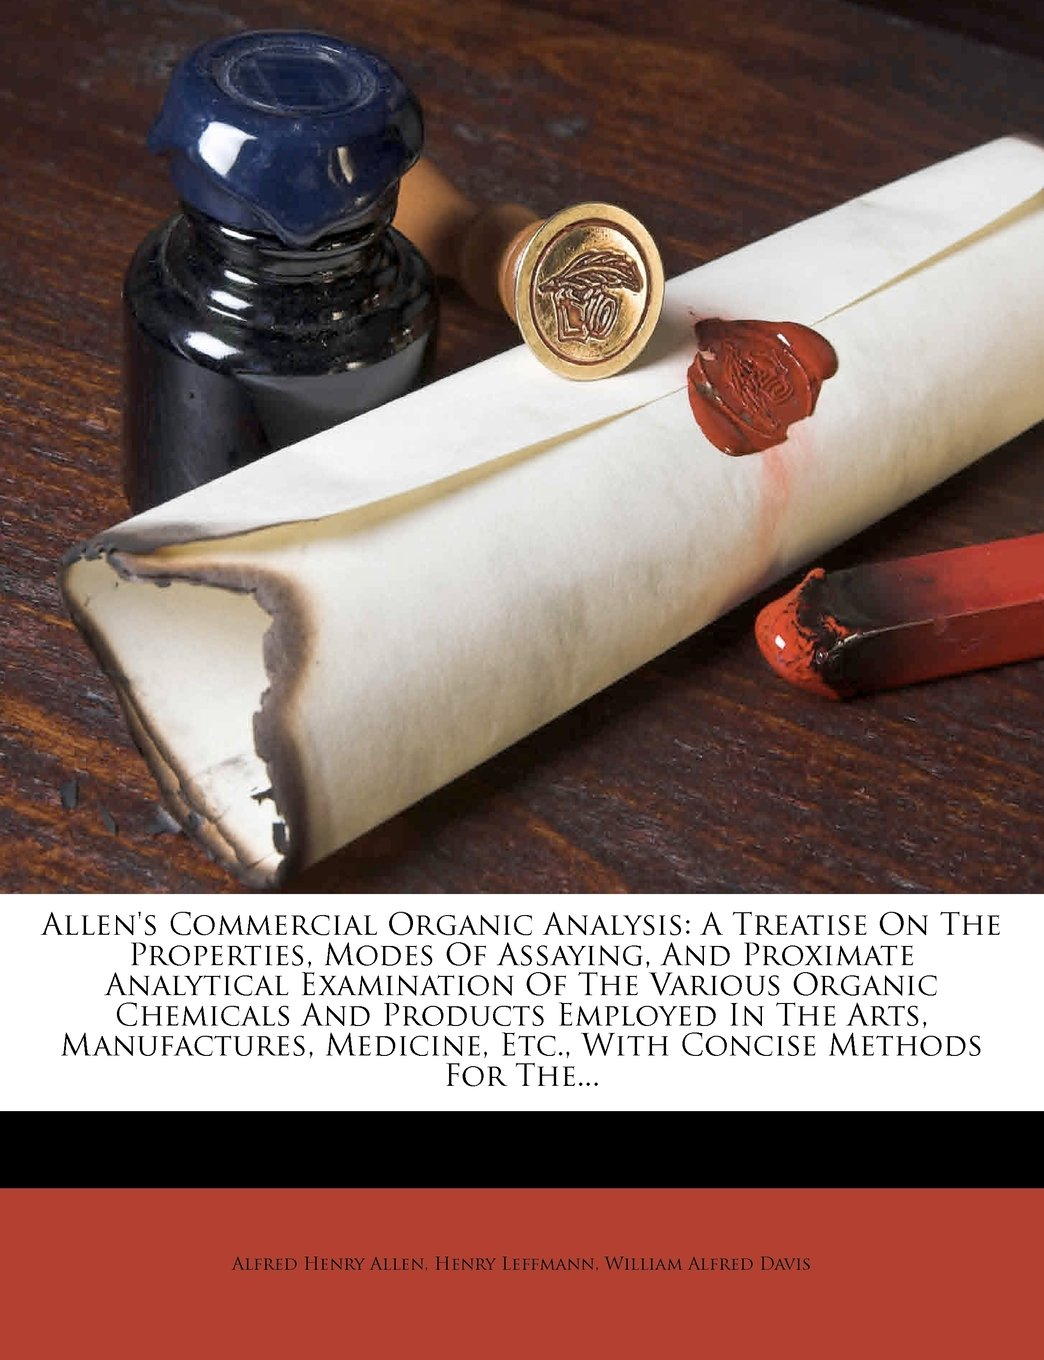 Allen's Commercial Organic Analysis: A Treatise On The Properties, Modes Of Assaying, And Proximate Analytical Examination Of The Various Organic ... Etc., With Concise Methods For The... ebook